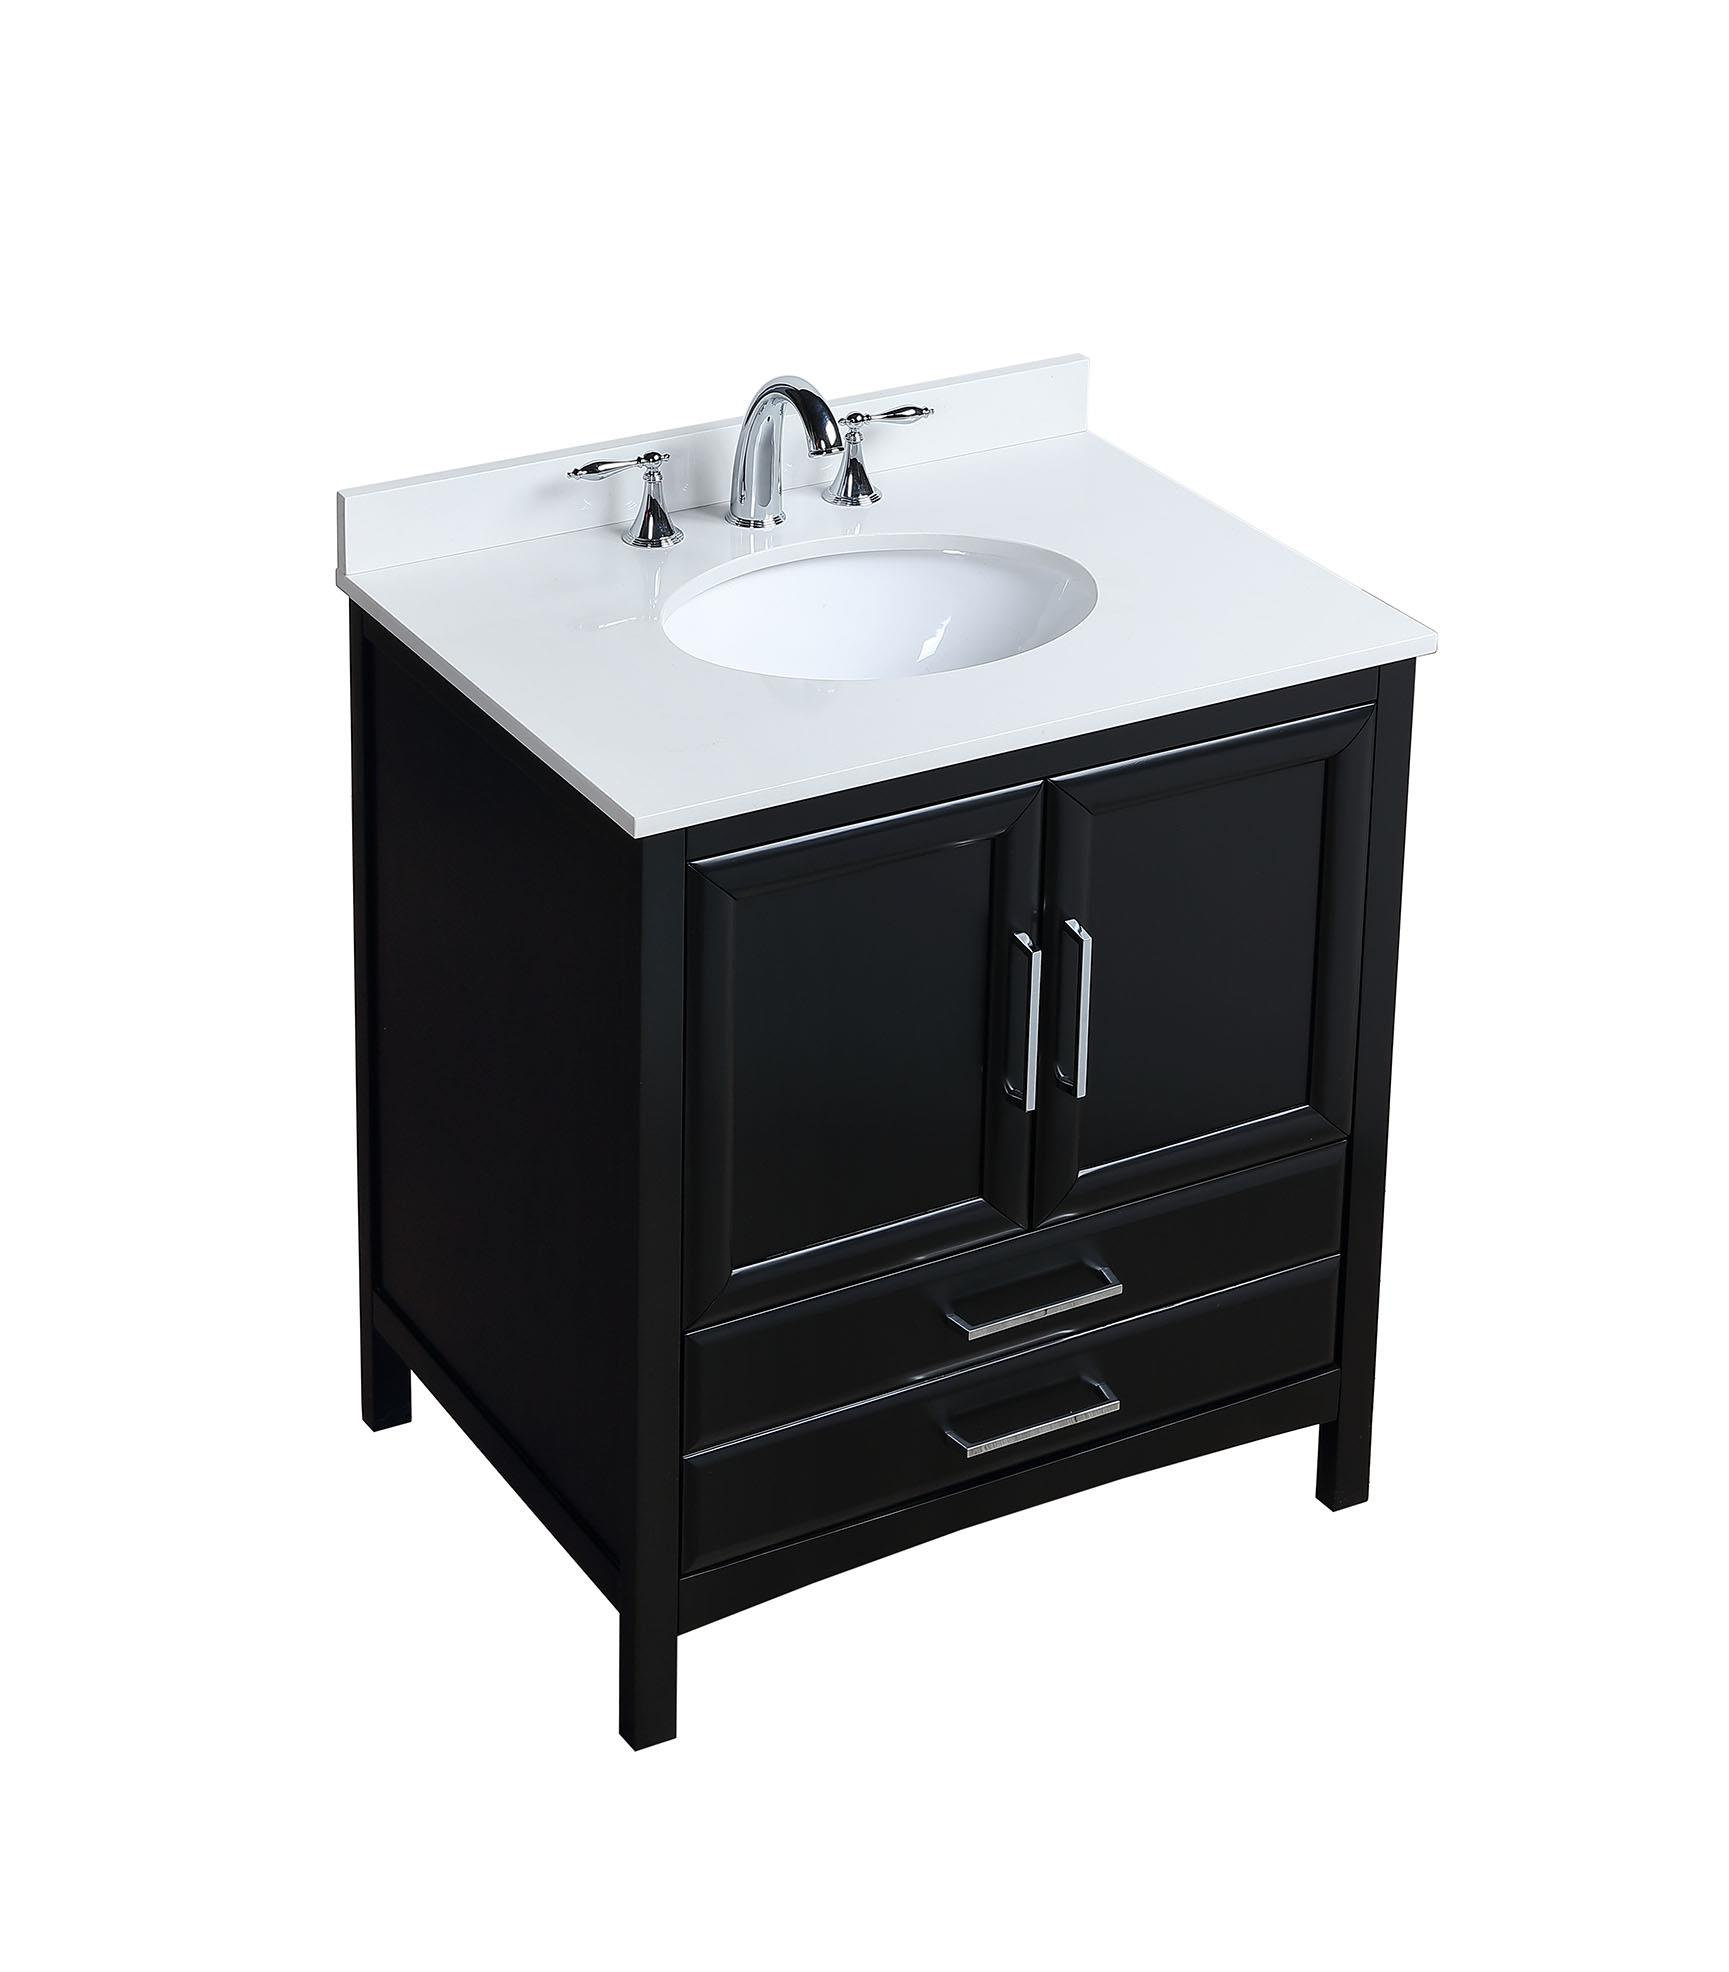 Vanity Art 30 Inch Single Sink Bathroom Set With Cultured Marble Top And Ceramic